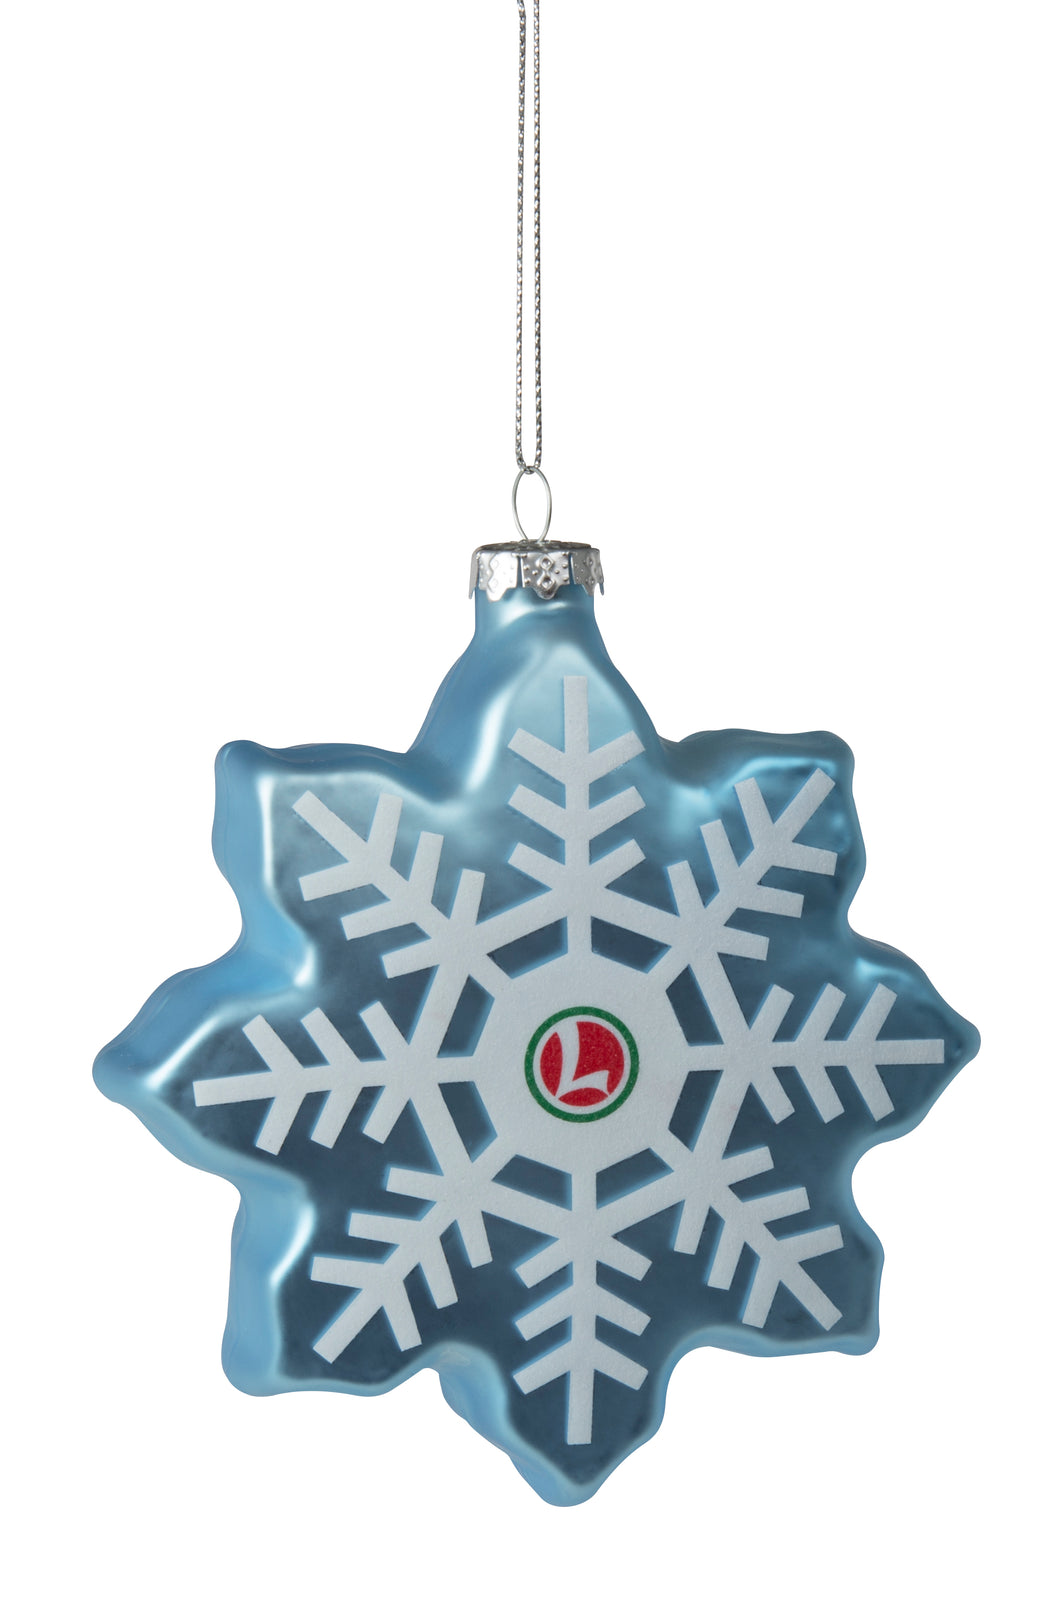 Lionel - Snowflake Ornament (9-22063) - the-pennsy-station-llc